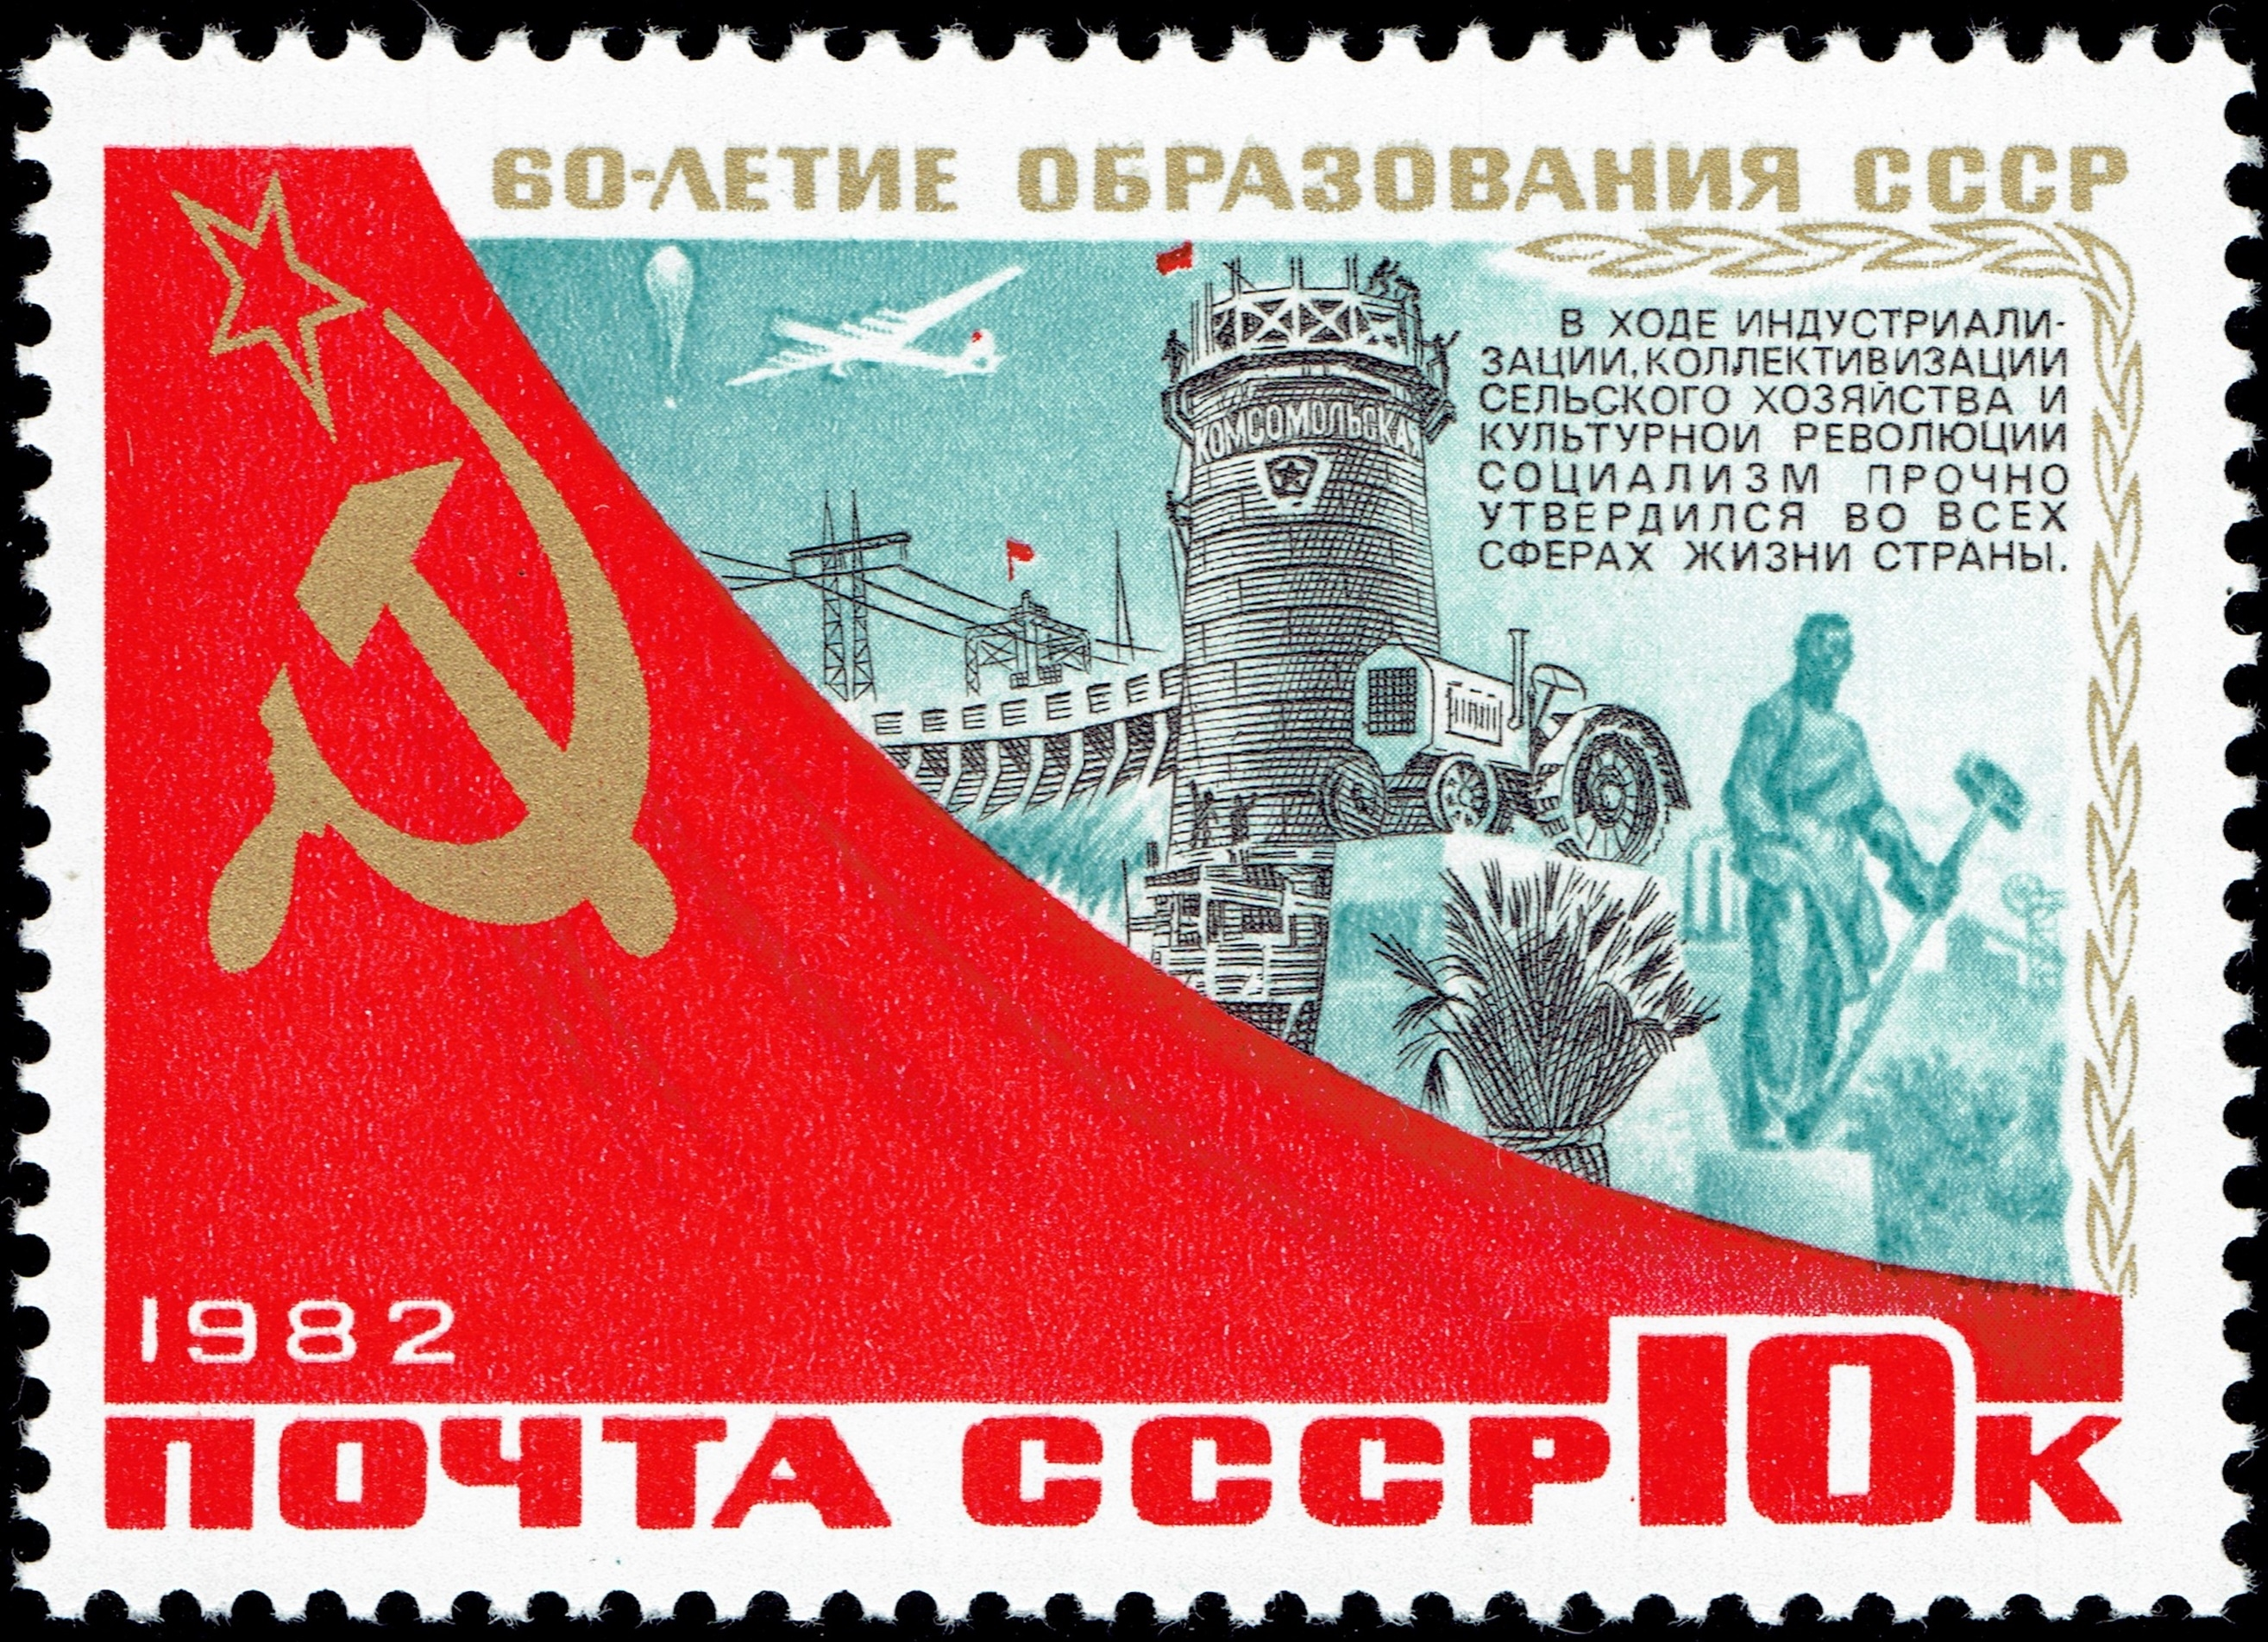 Union of Soviet Socialist Republics - Scott #5092 (1982)